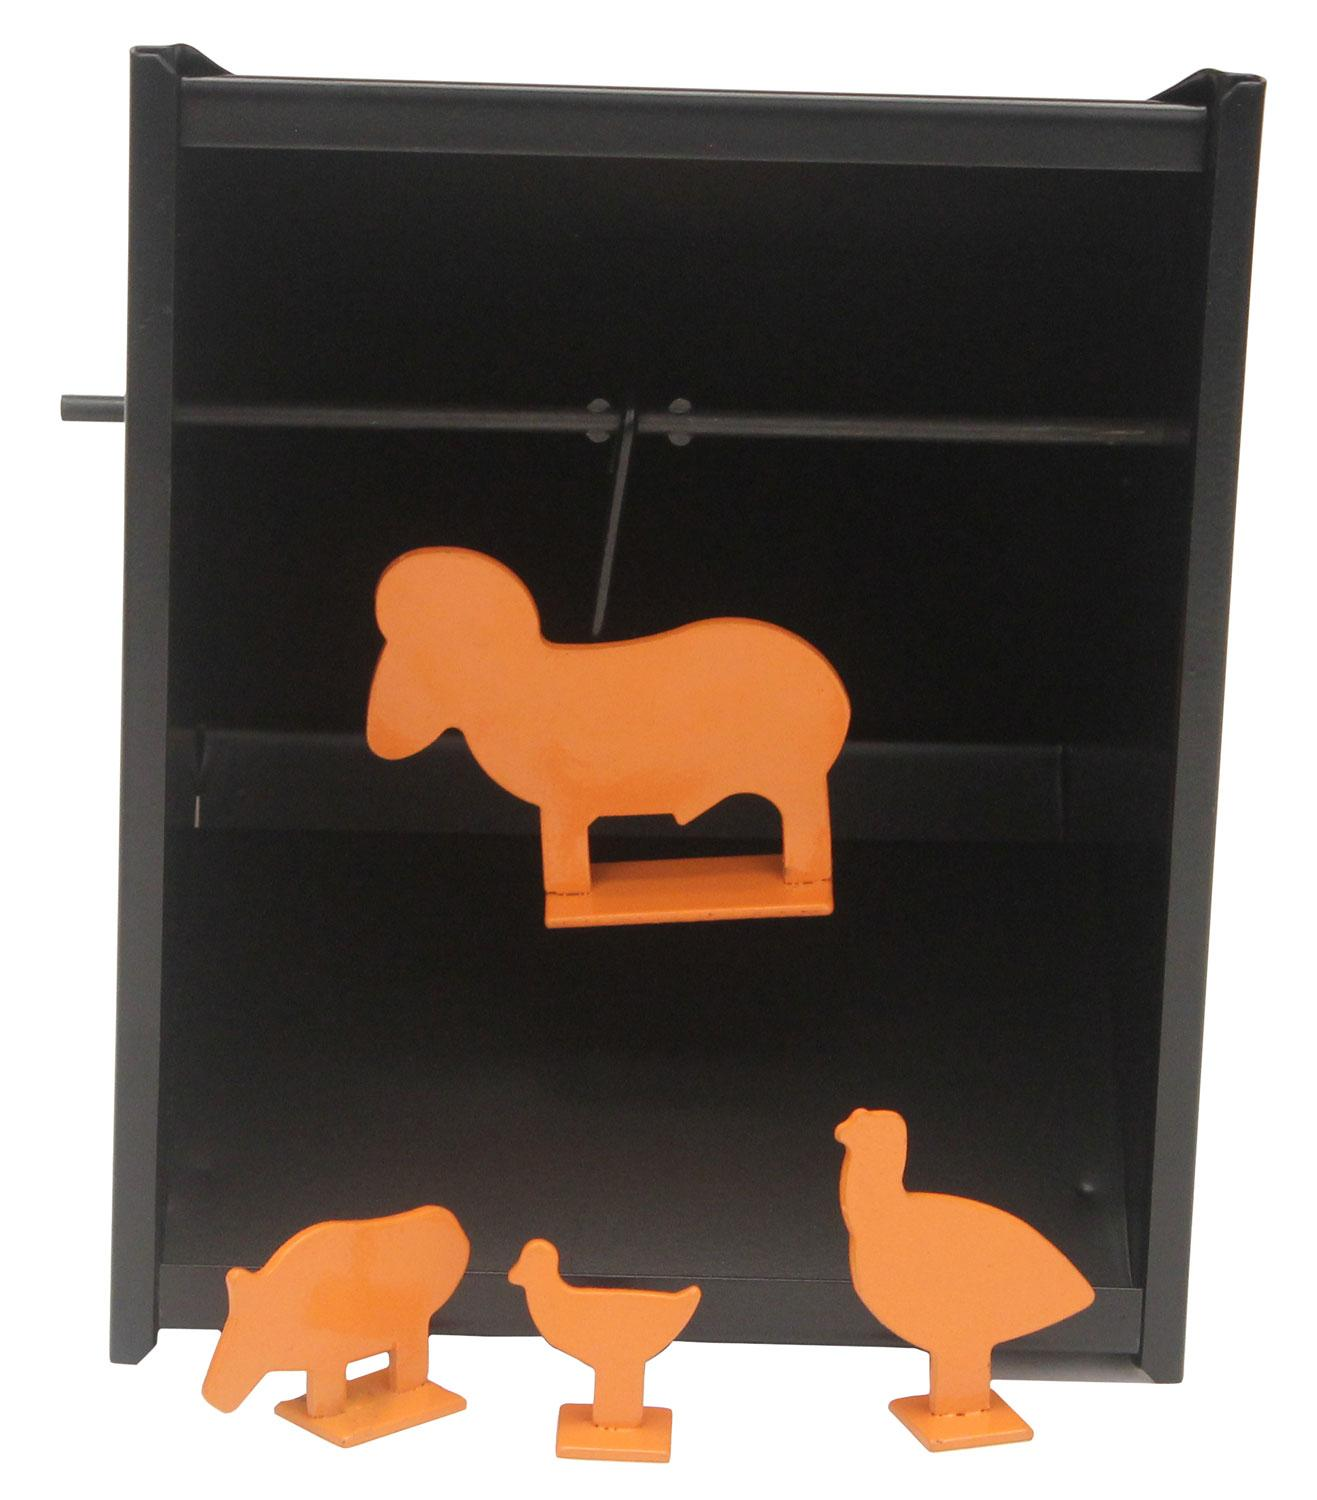 Beeman 2085 Pellet Trap W/Targets And Silhouetts 1